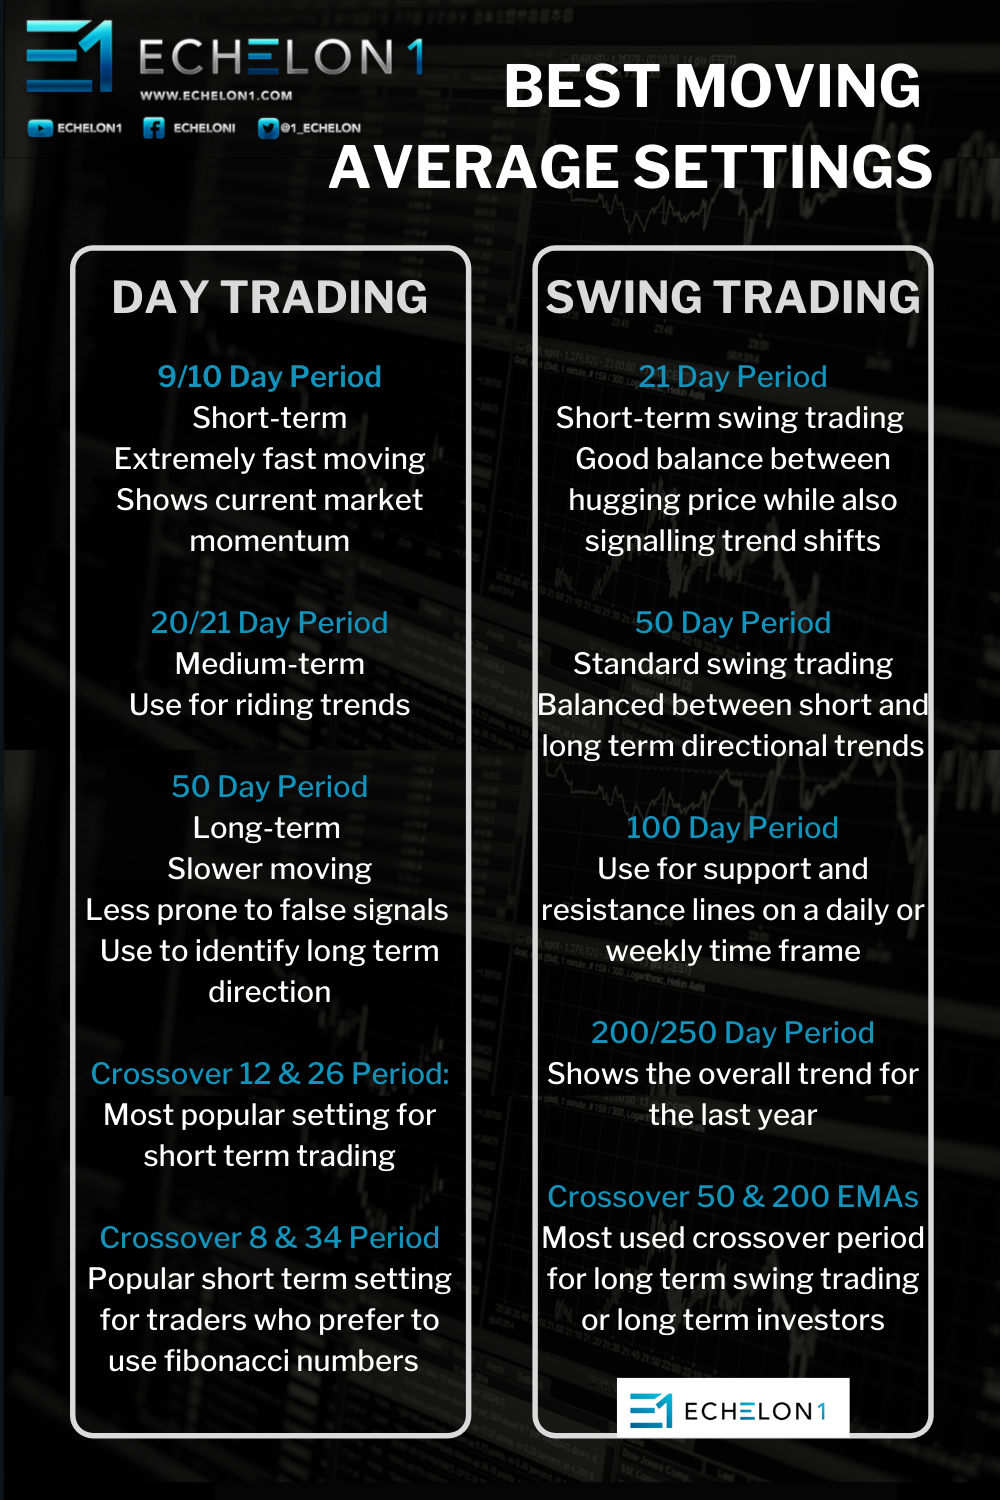 Moving Averages - Best Moving Average Settings in Stock trading